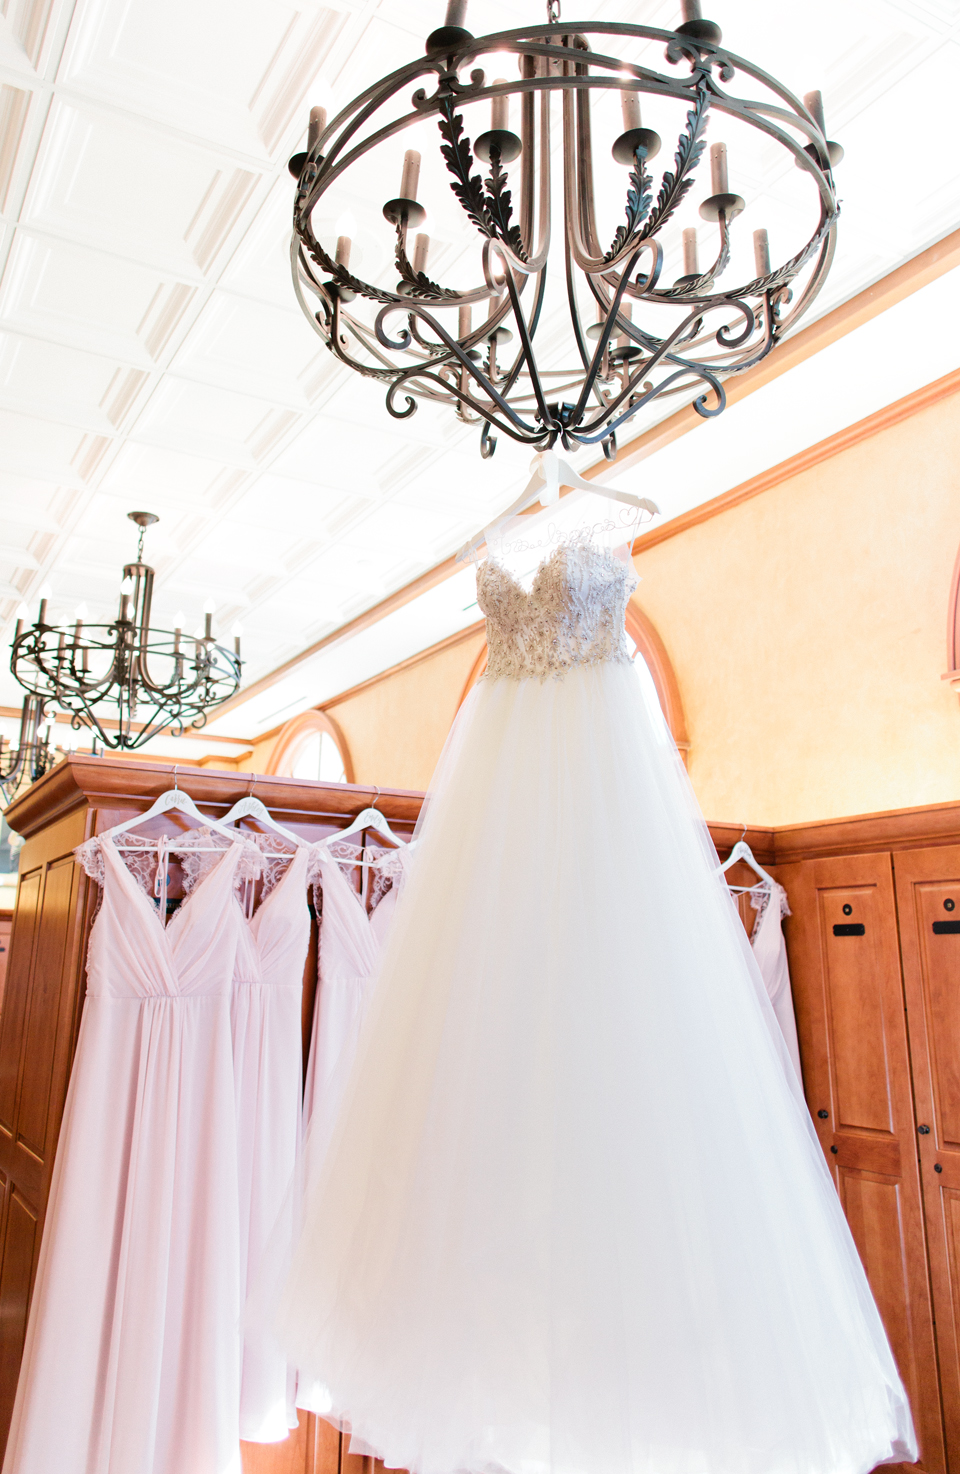 Image of a Calvet Couture bridal gown hanging on a chandelier with bridesmaid gowns in the background.  This is a wedding at TPC Sawgrass in Ponte Vedra, Florida